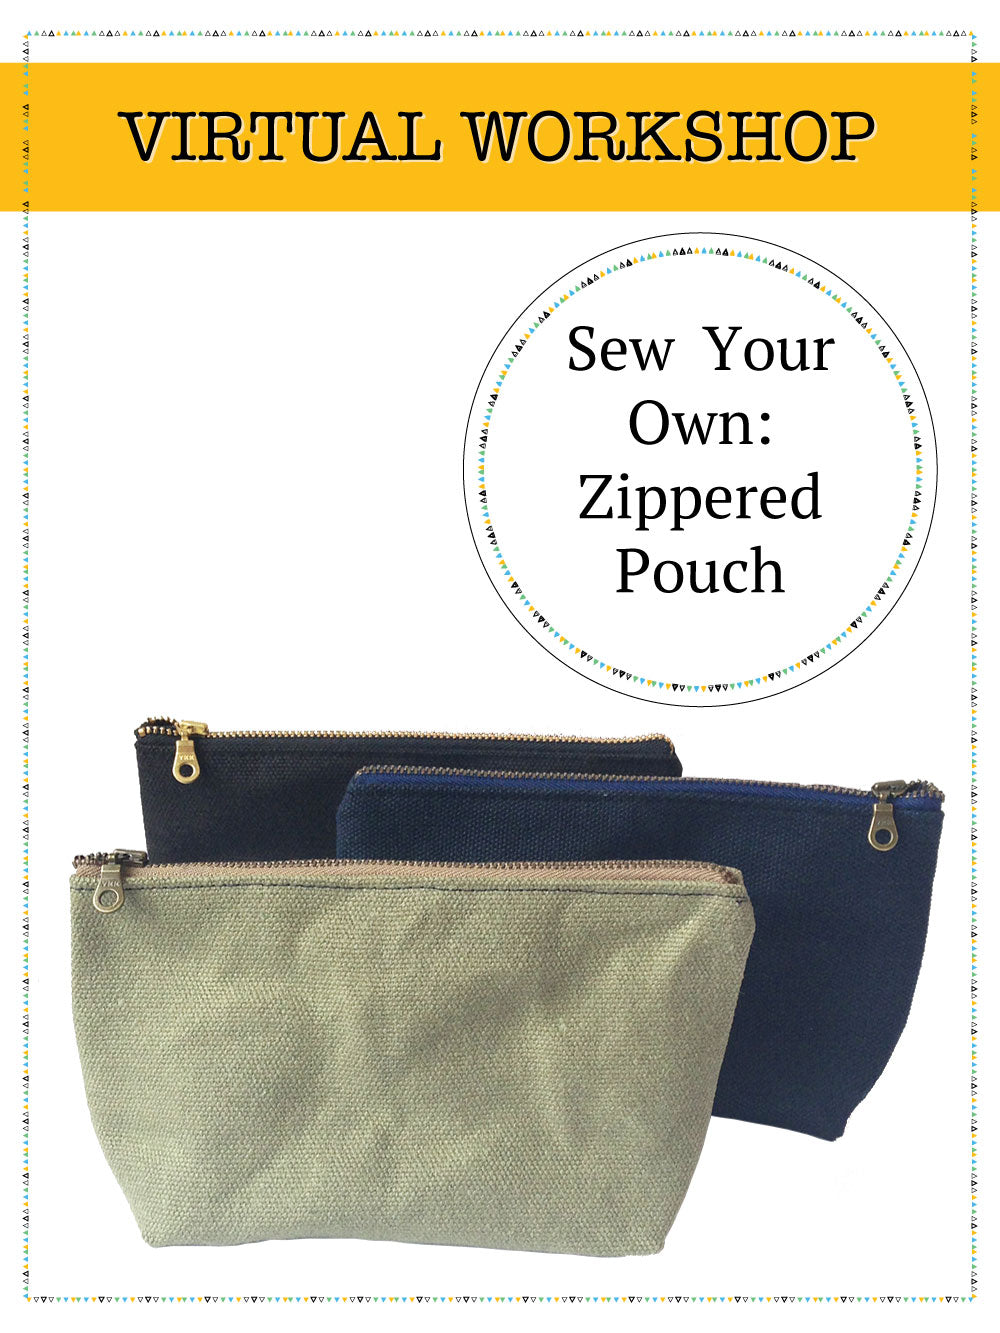 3 waxed canvas pouches in a row. Text above reads: Sew Your Own: Zippered Pouch and VIRTUAL WORKSHOP